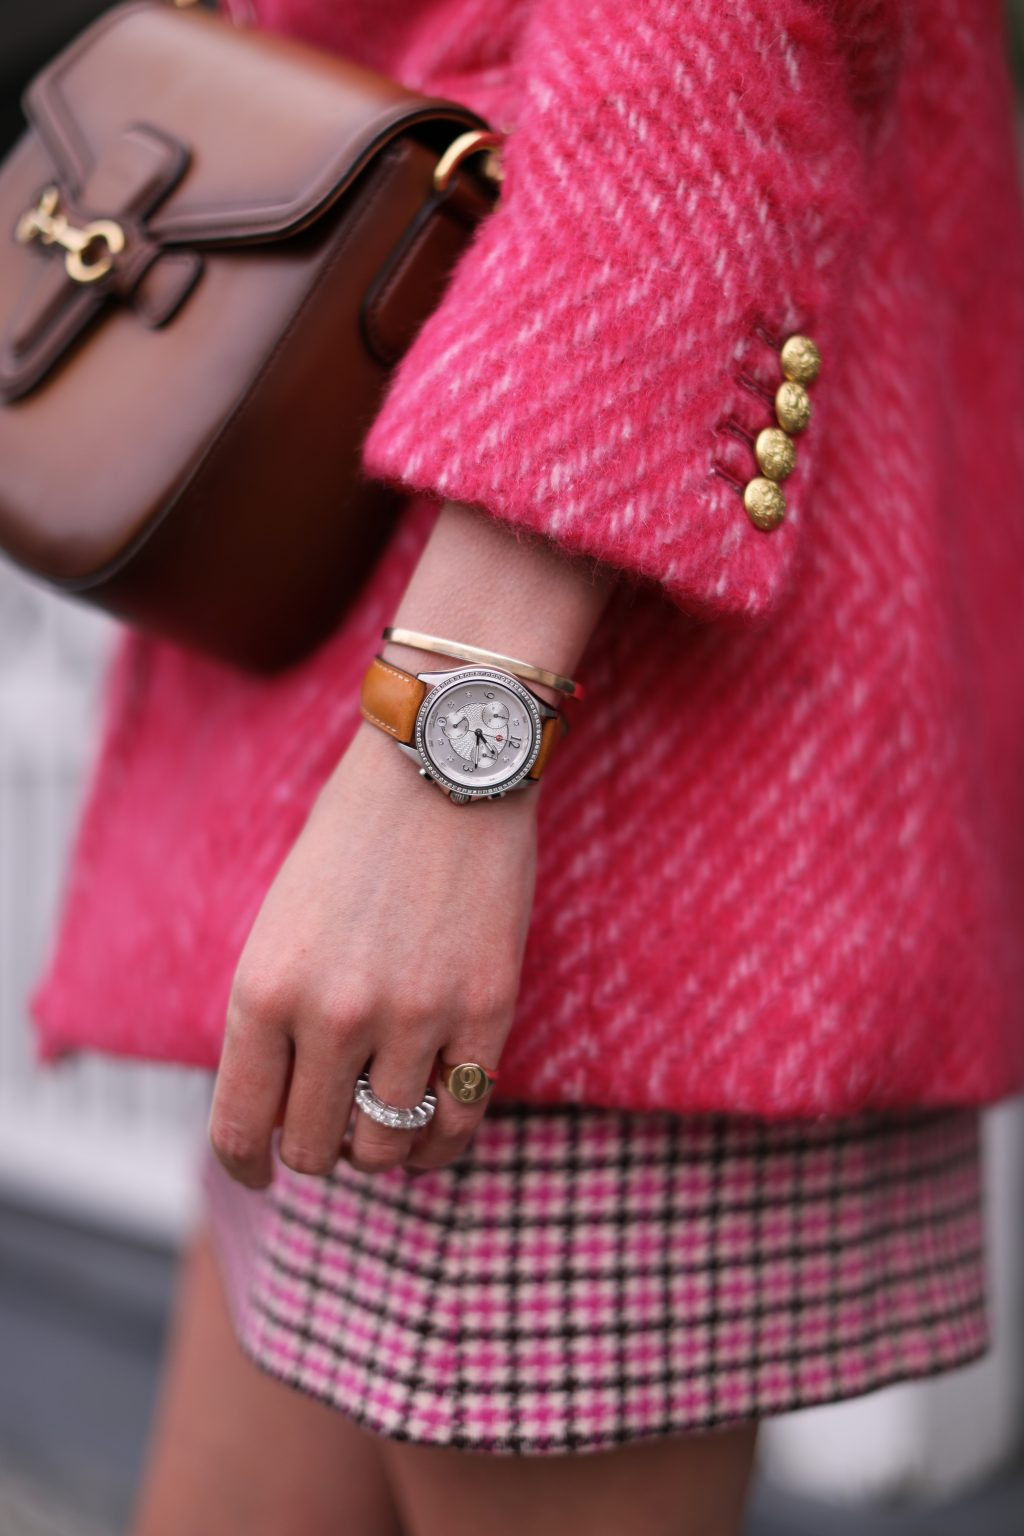 atlantic-pacific-jewelry-watches-michele-gucci-jcrew-pink-peacoat